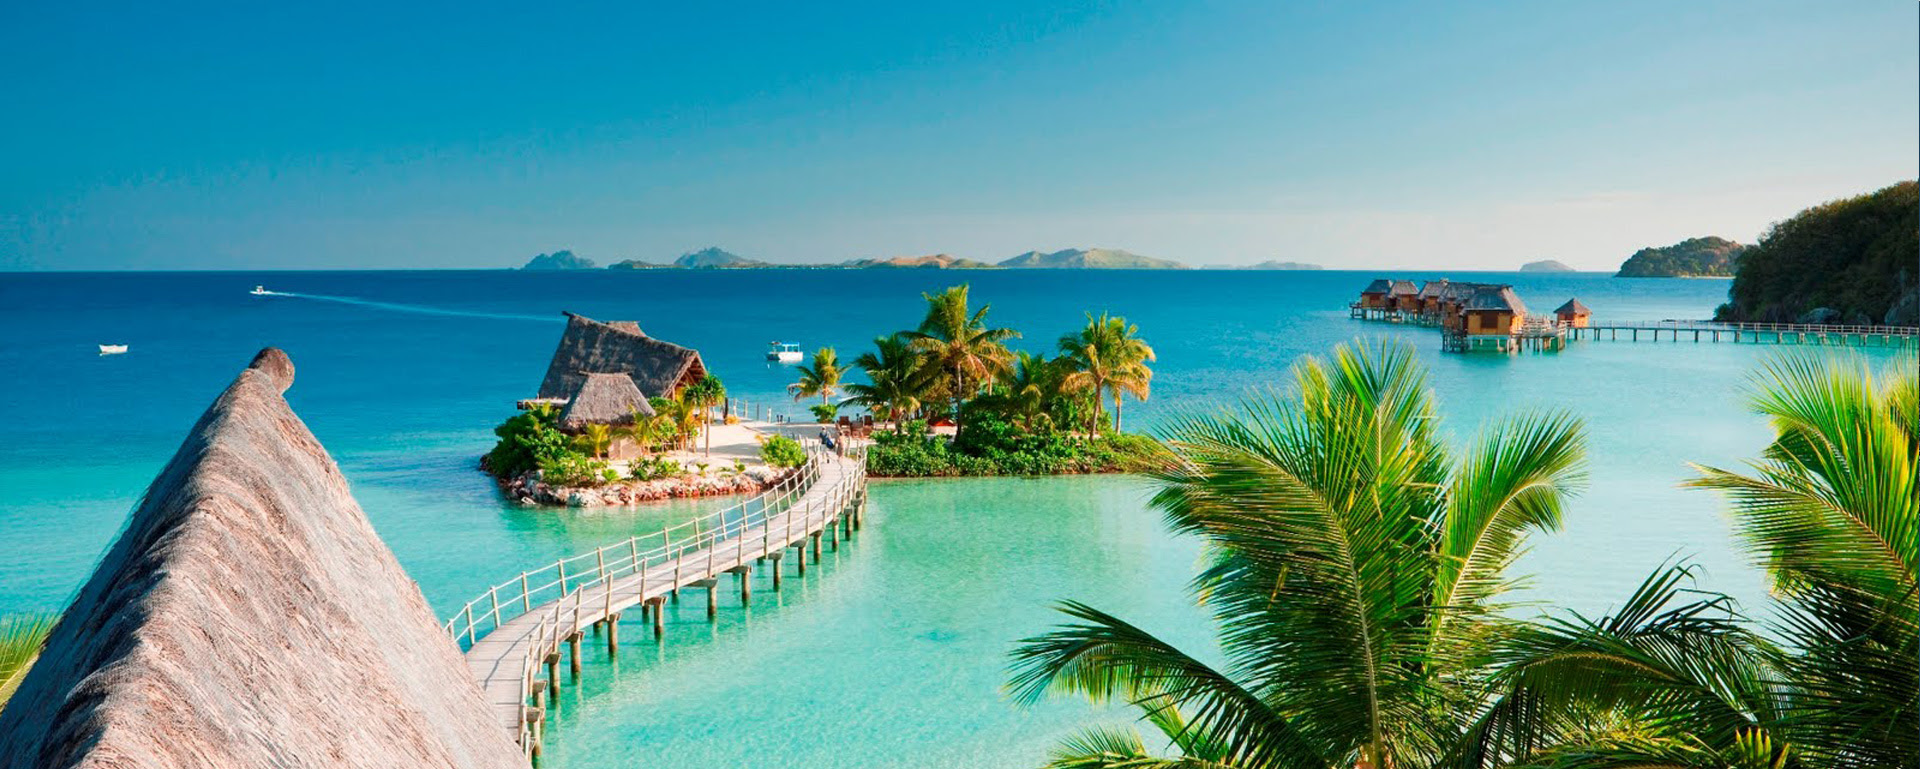 Allinclusive vacations  Lucky 7 Travel